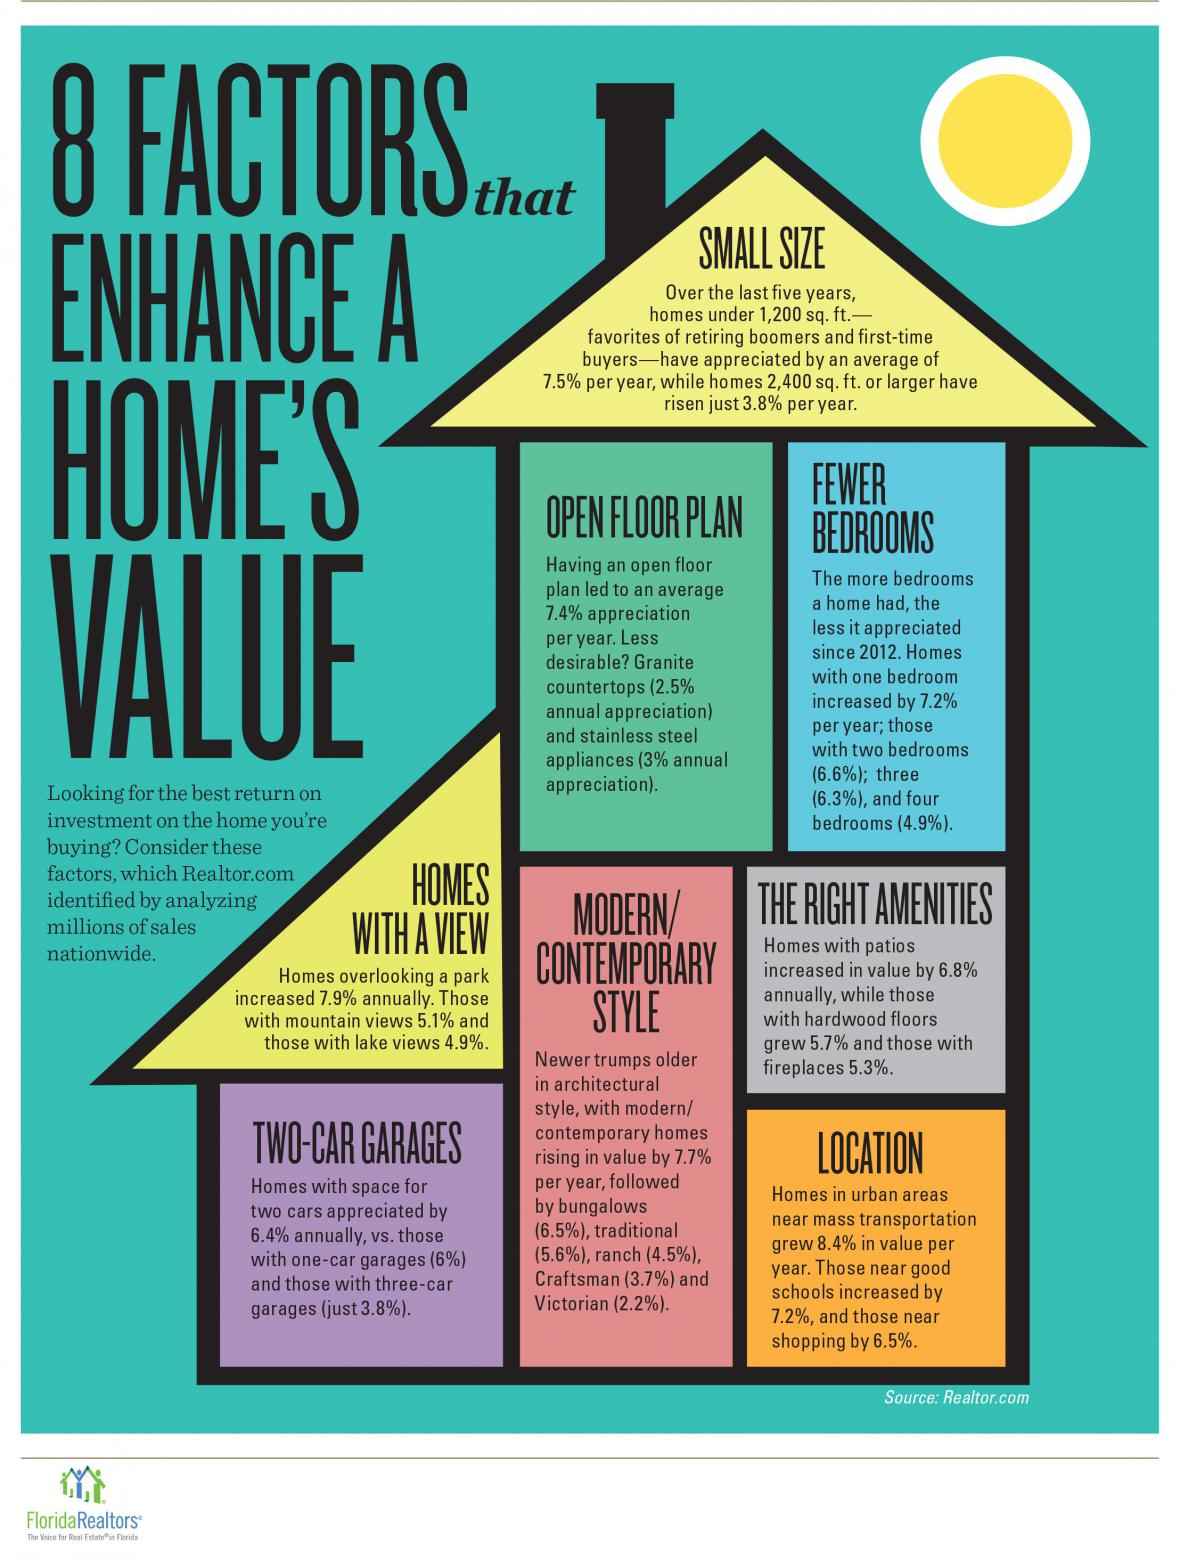 8 FACTORS ENHANCE A HOME'S VALUE